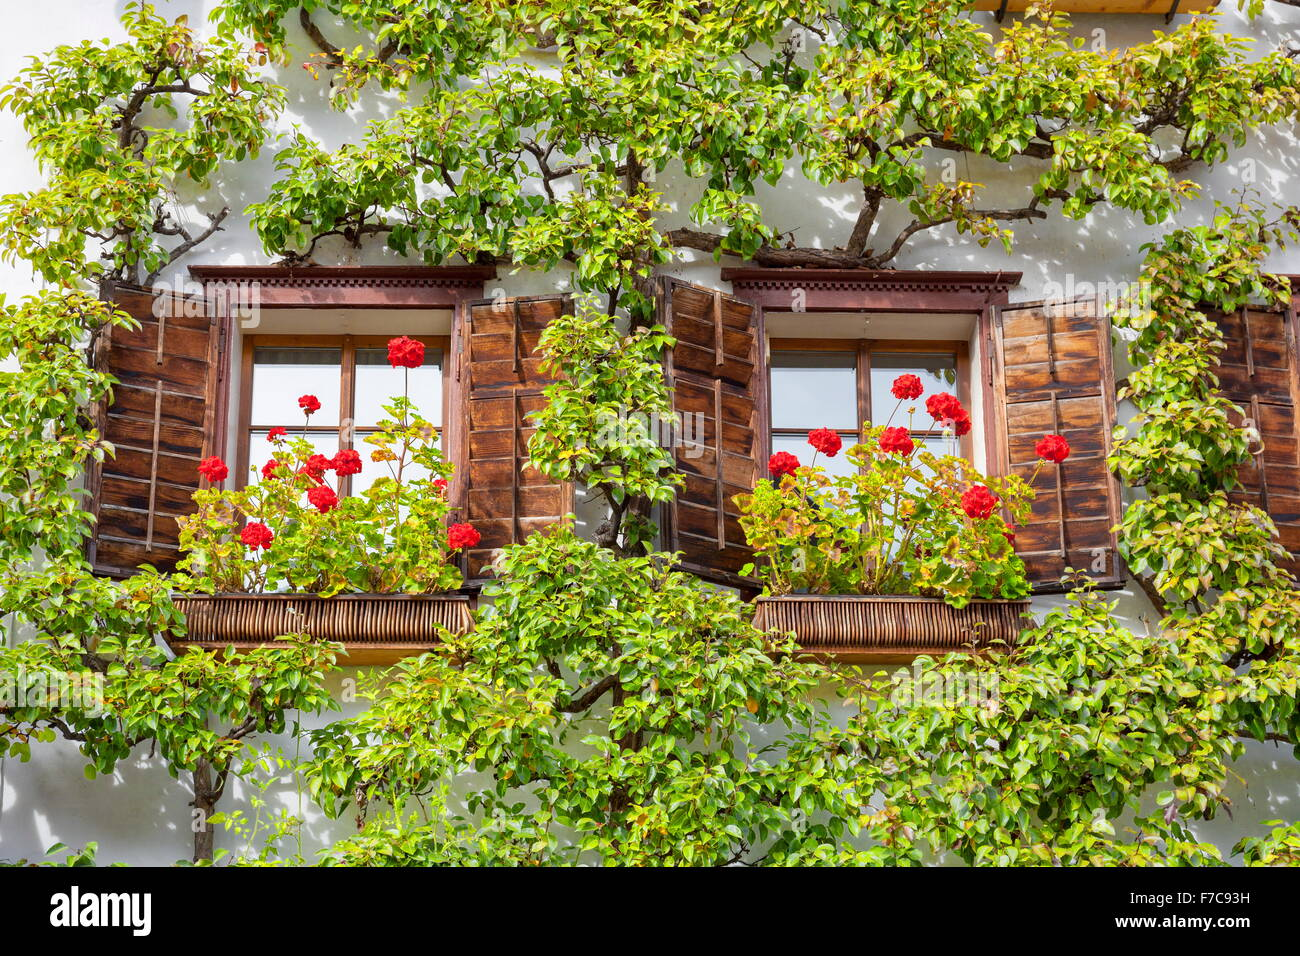 Windows with flowers, Hallstatt, Salzkammergut, Austria - Stock Image